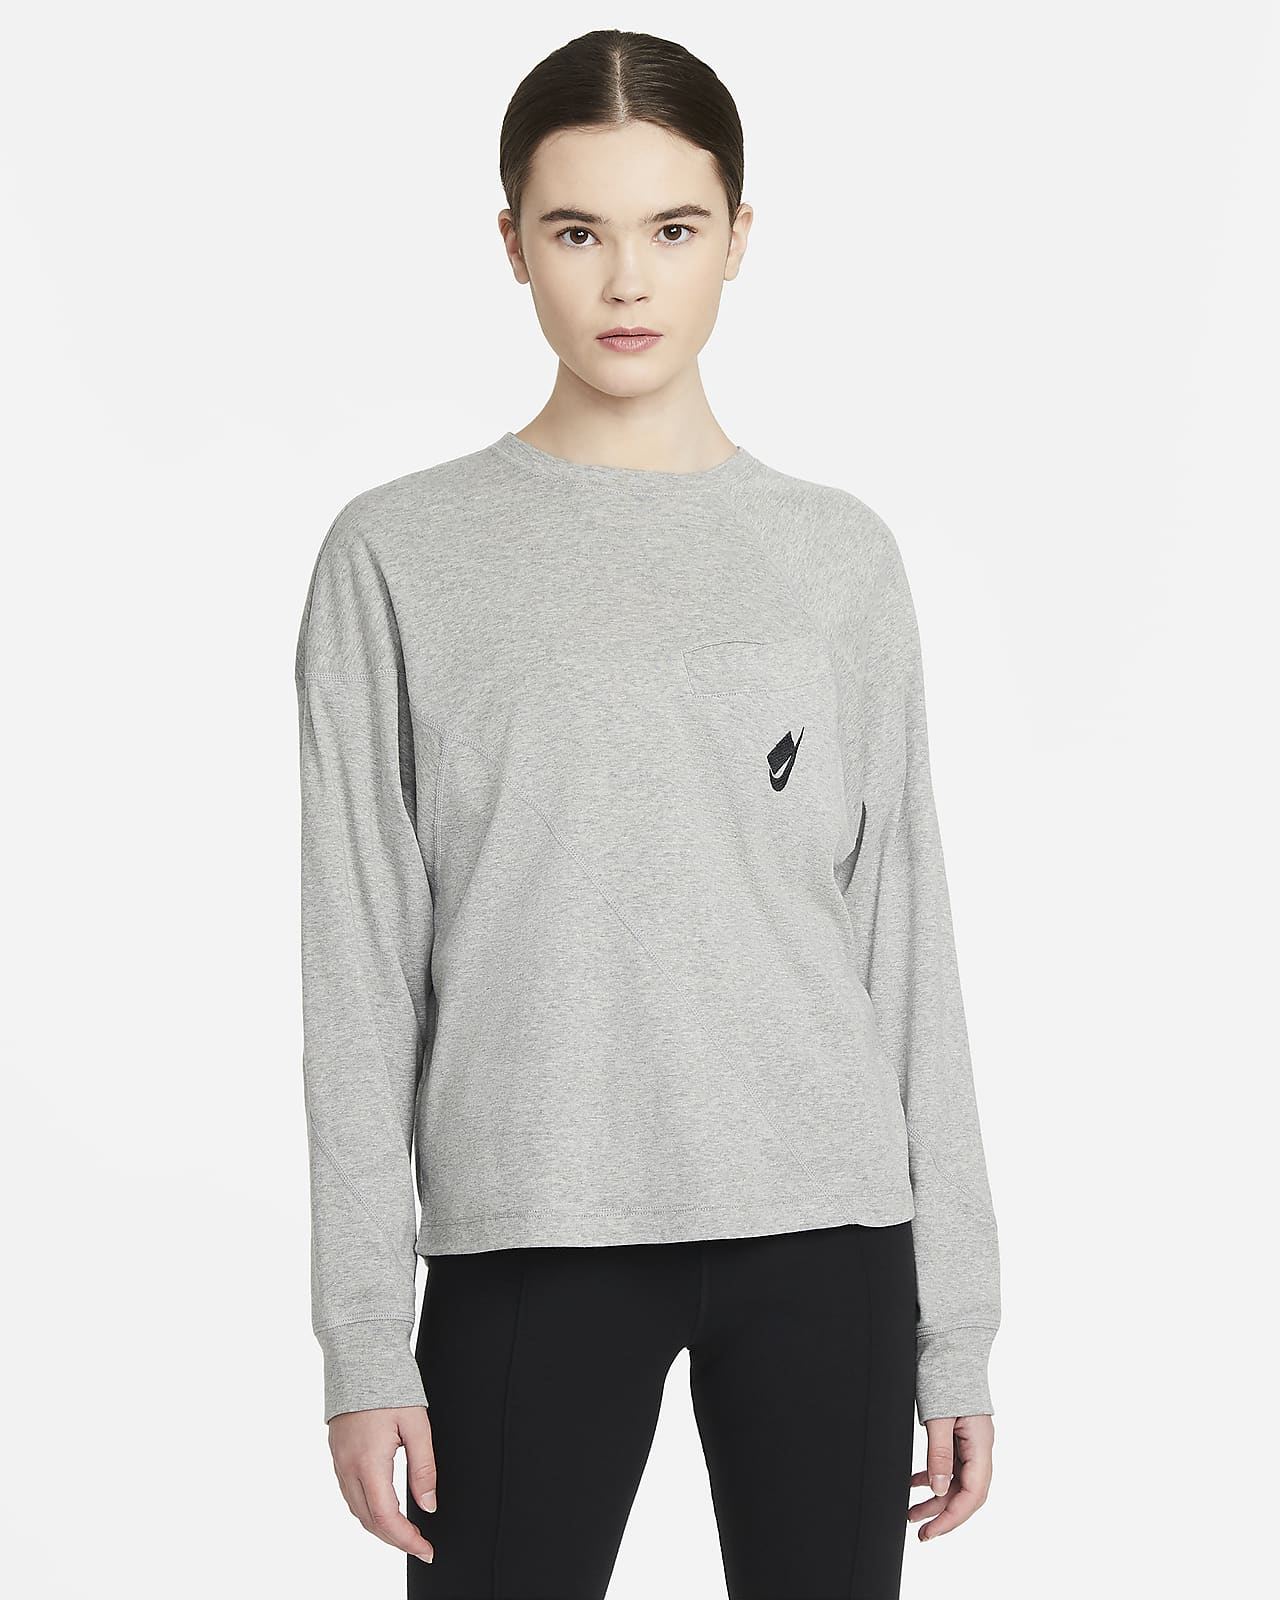 Nike Sportswear NSW Women's Long-Sleeve Top